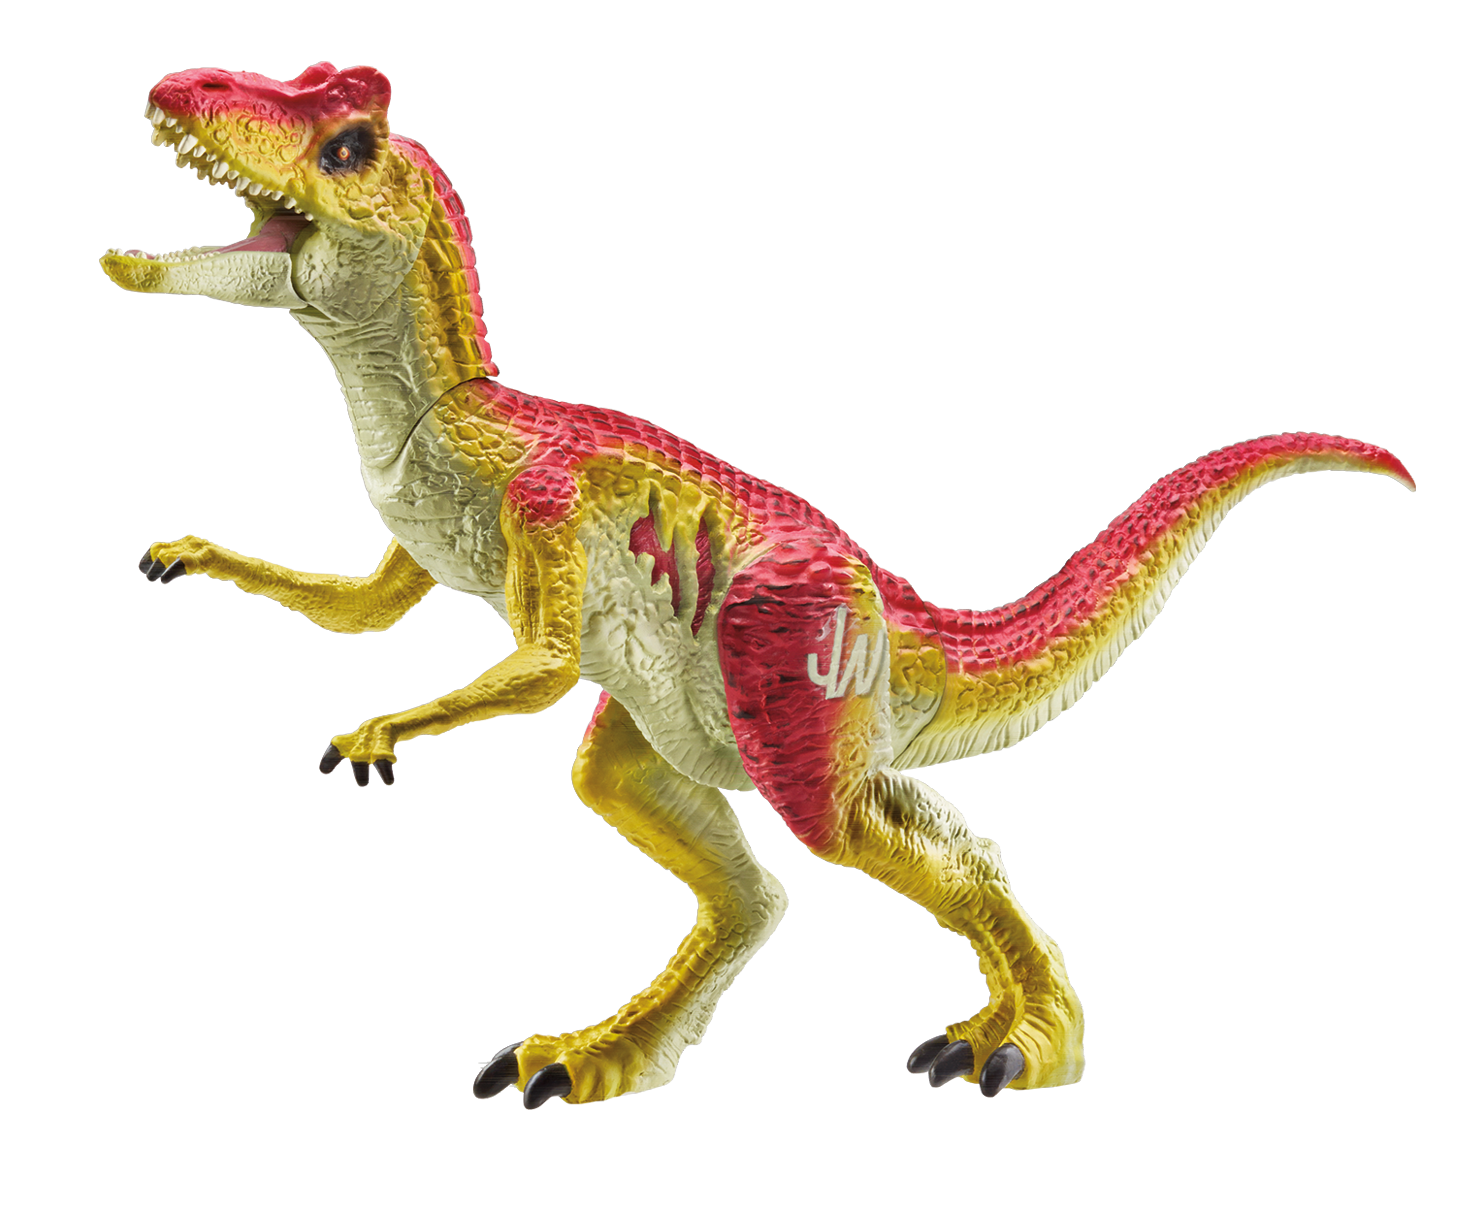 Velociraptor transparent delta. Jurassic world dinosaurs toy